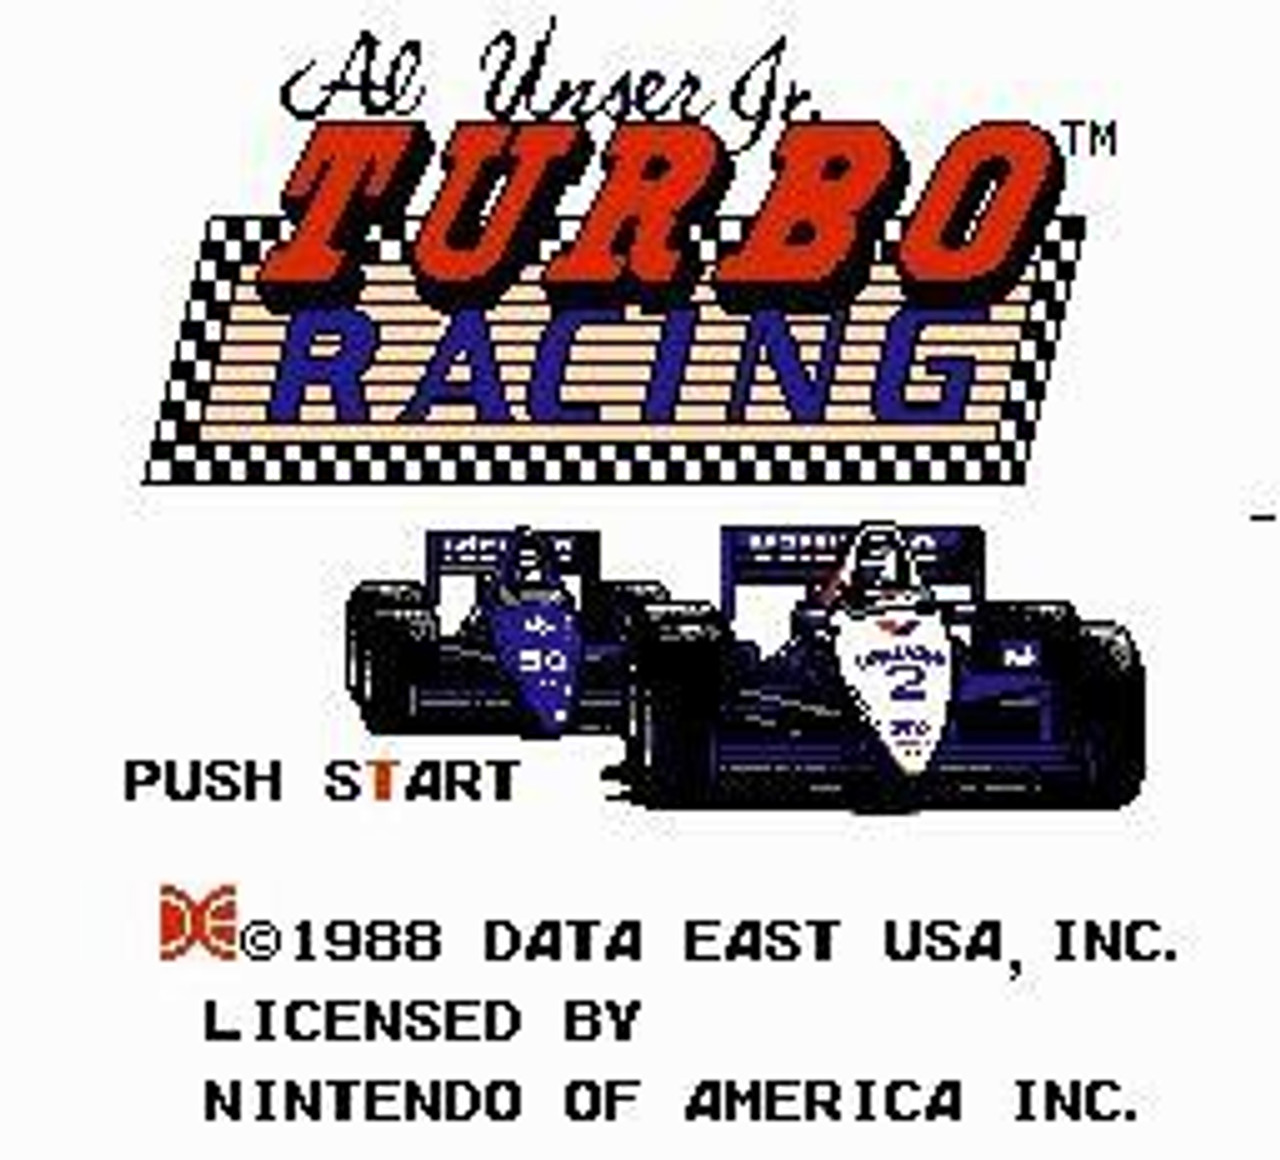 Nintendo NES Al Unser Jr. Turbo Racing Video Game Cartridge [Played Condition]